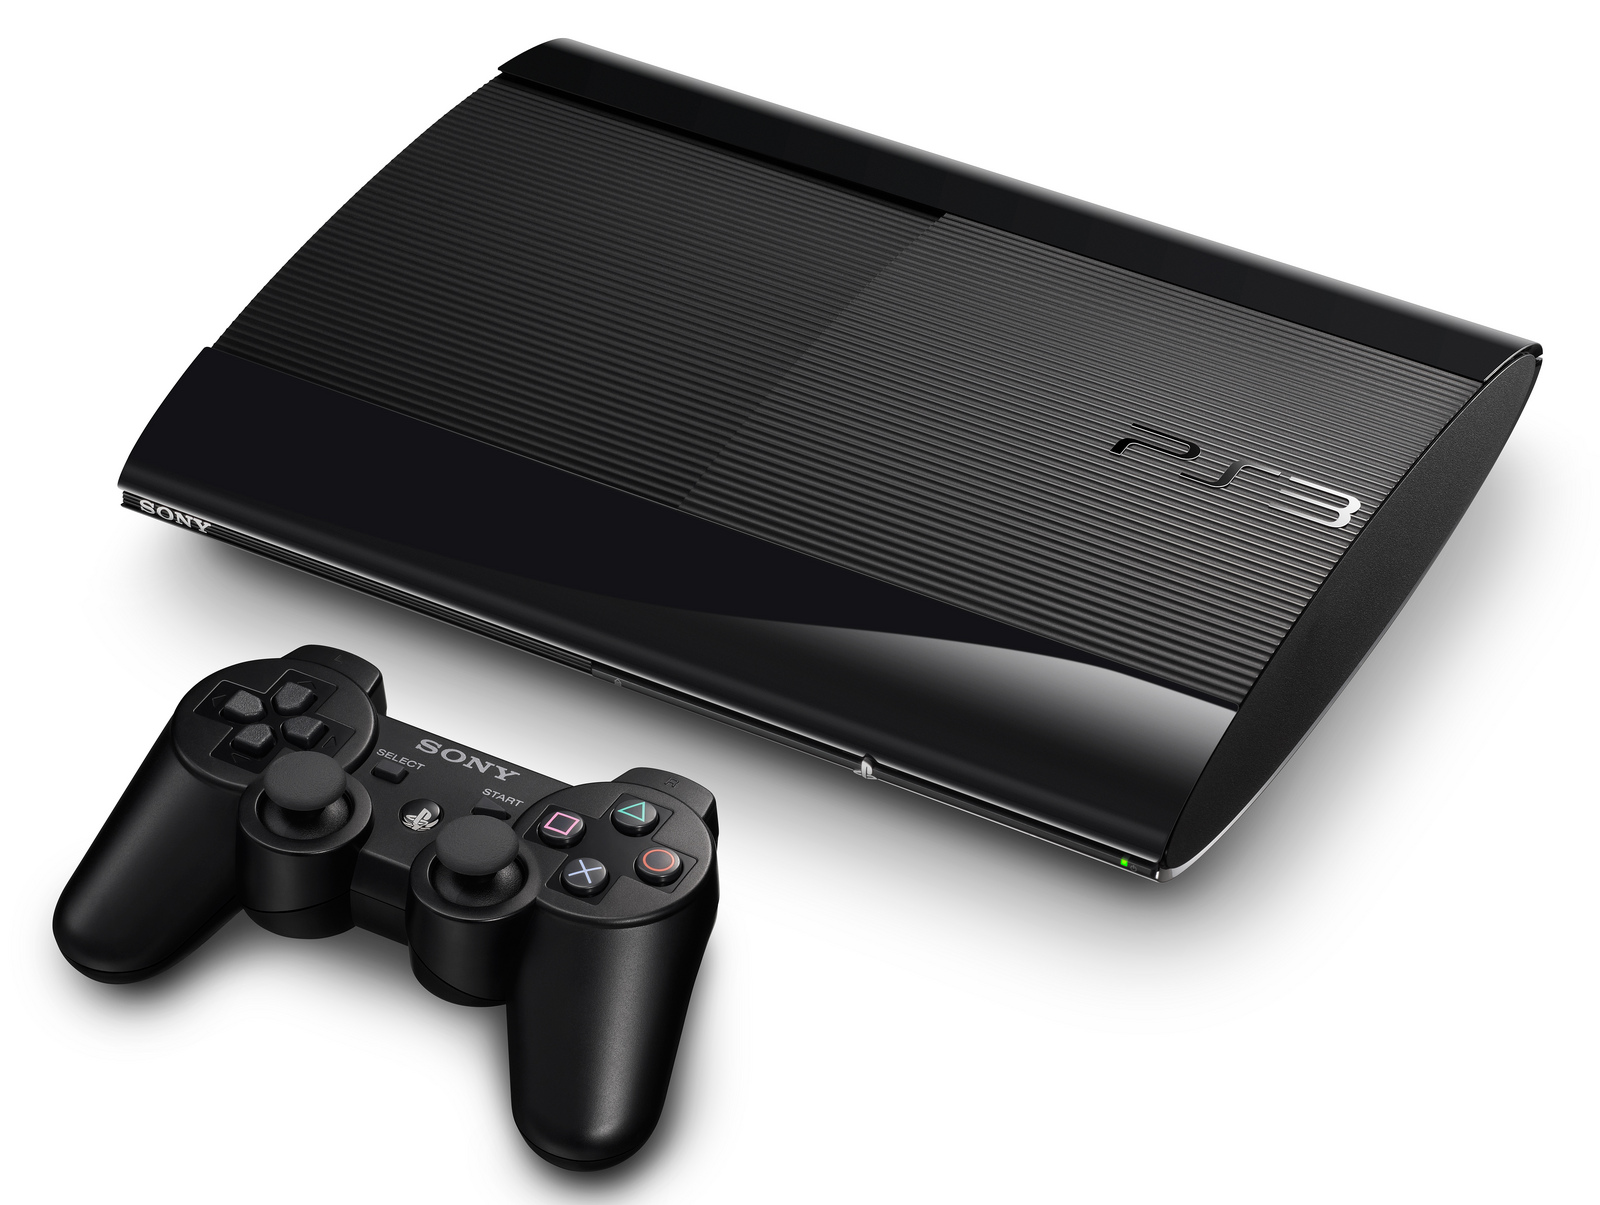 Cum sa introduci un PS3 in Recovery Mode